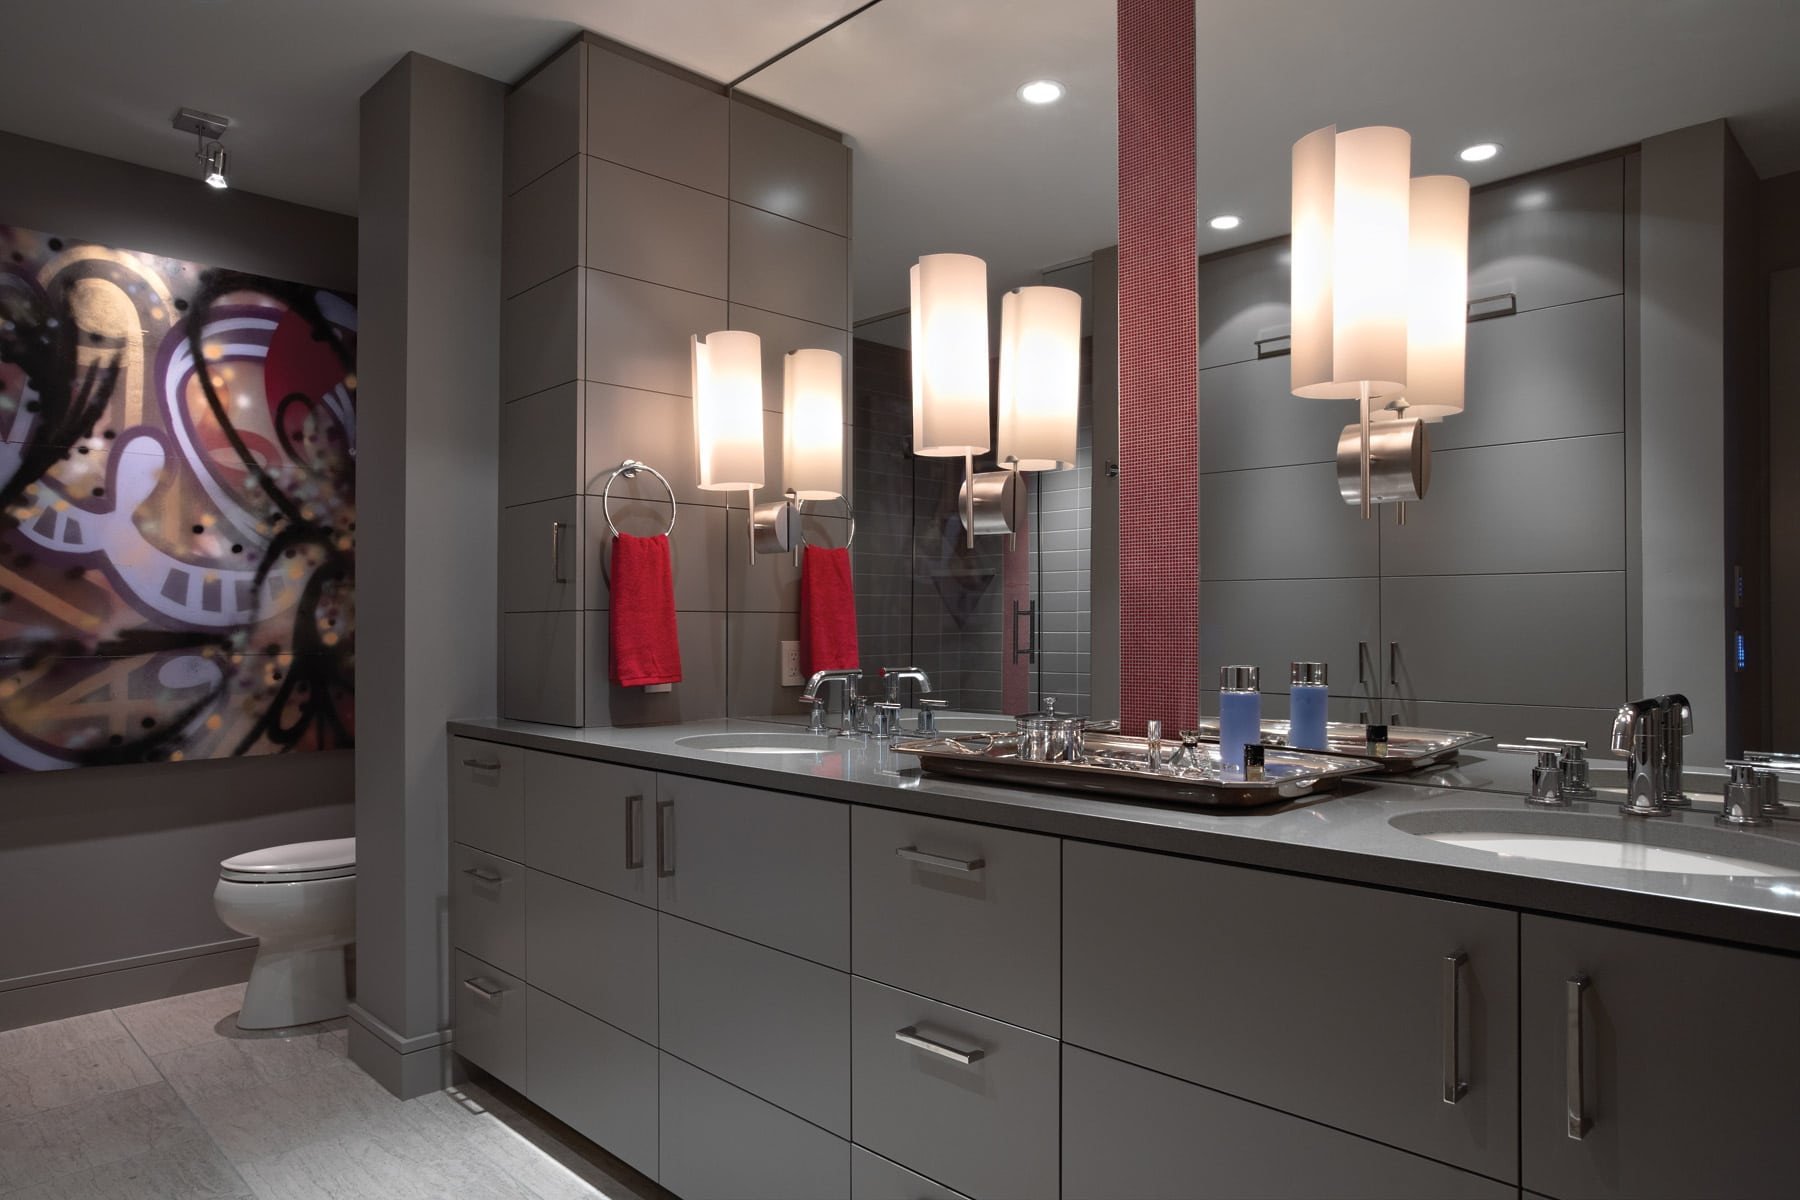 Exceptional-Condominium-Master-Bath-Vanity-Minneapolis-interior-designer.jpeg